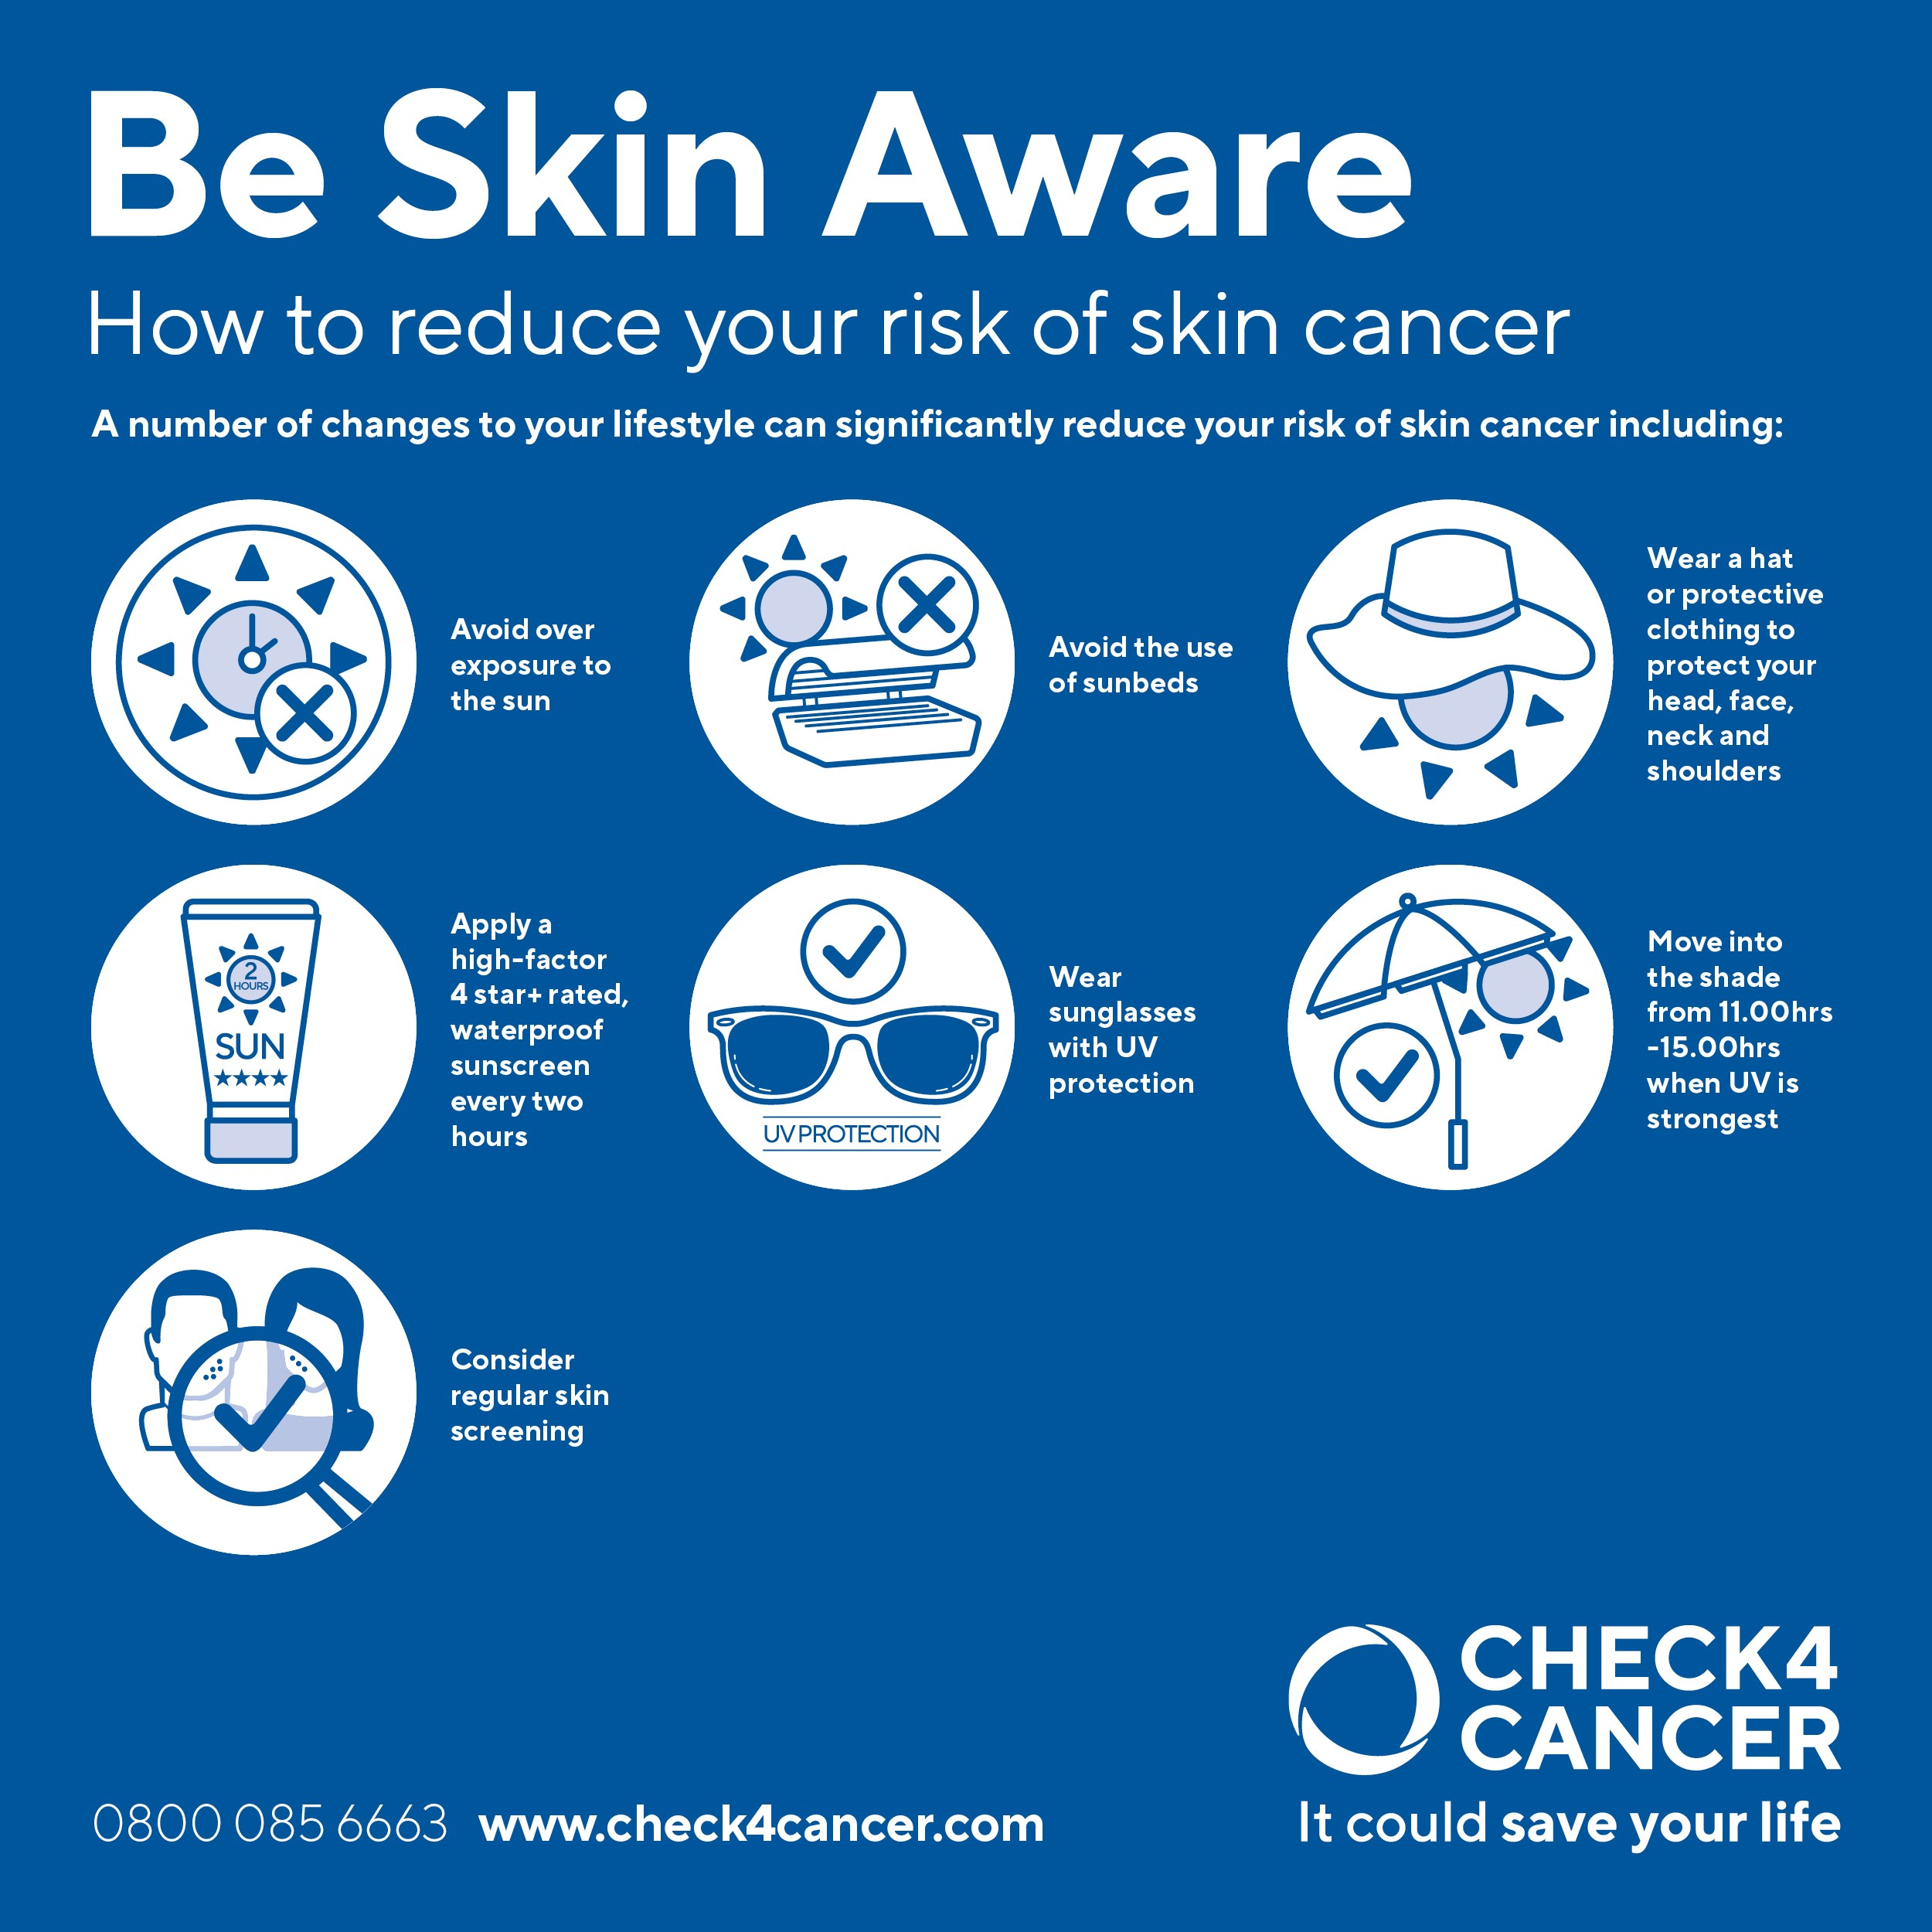 Be Skin Aware Reduce your Risk JPEG